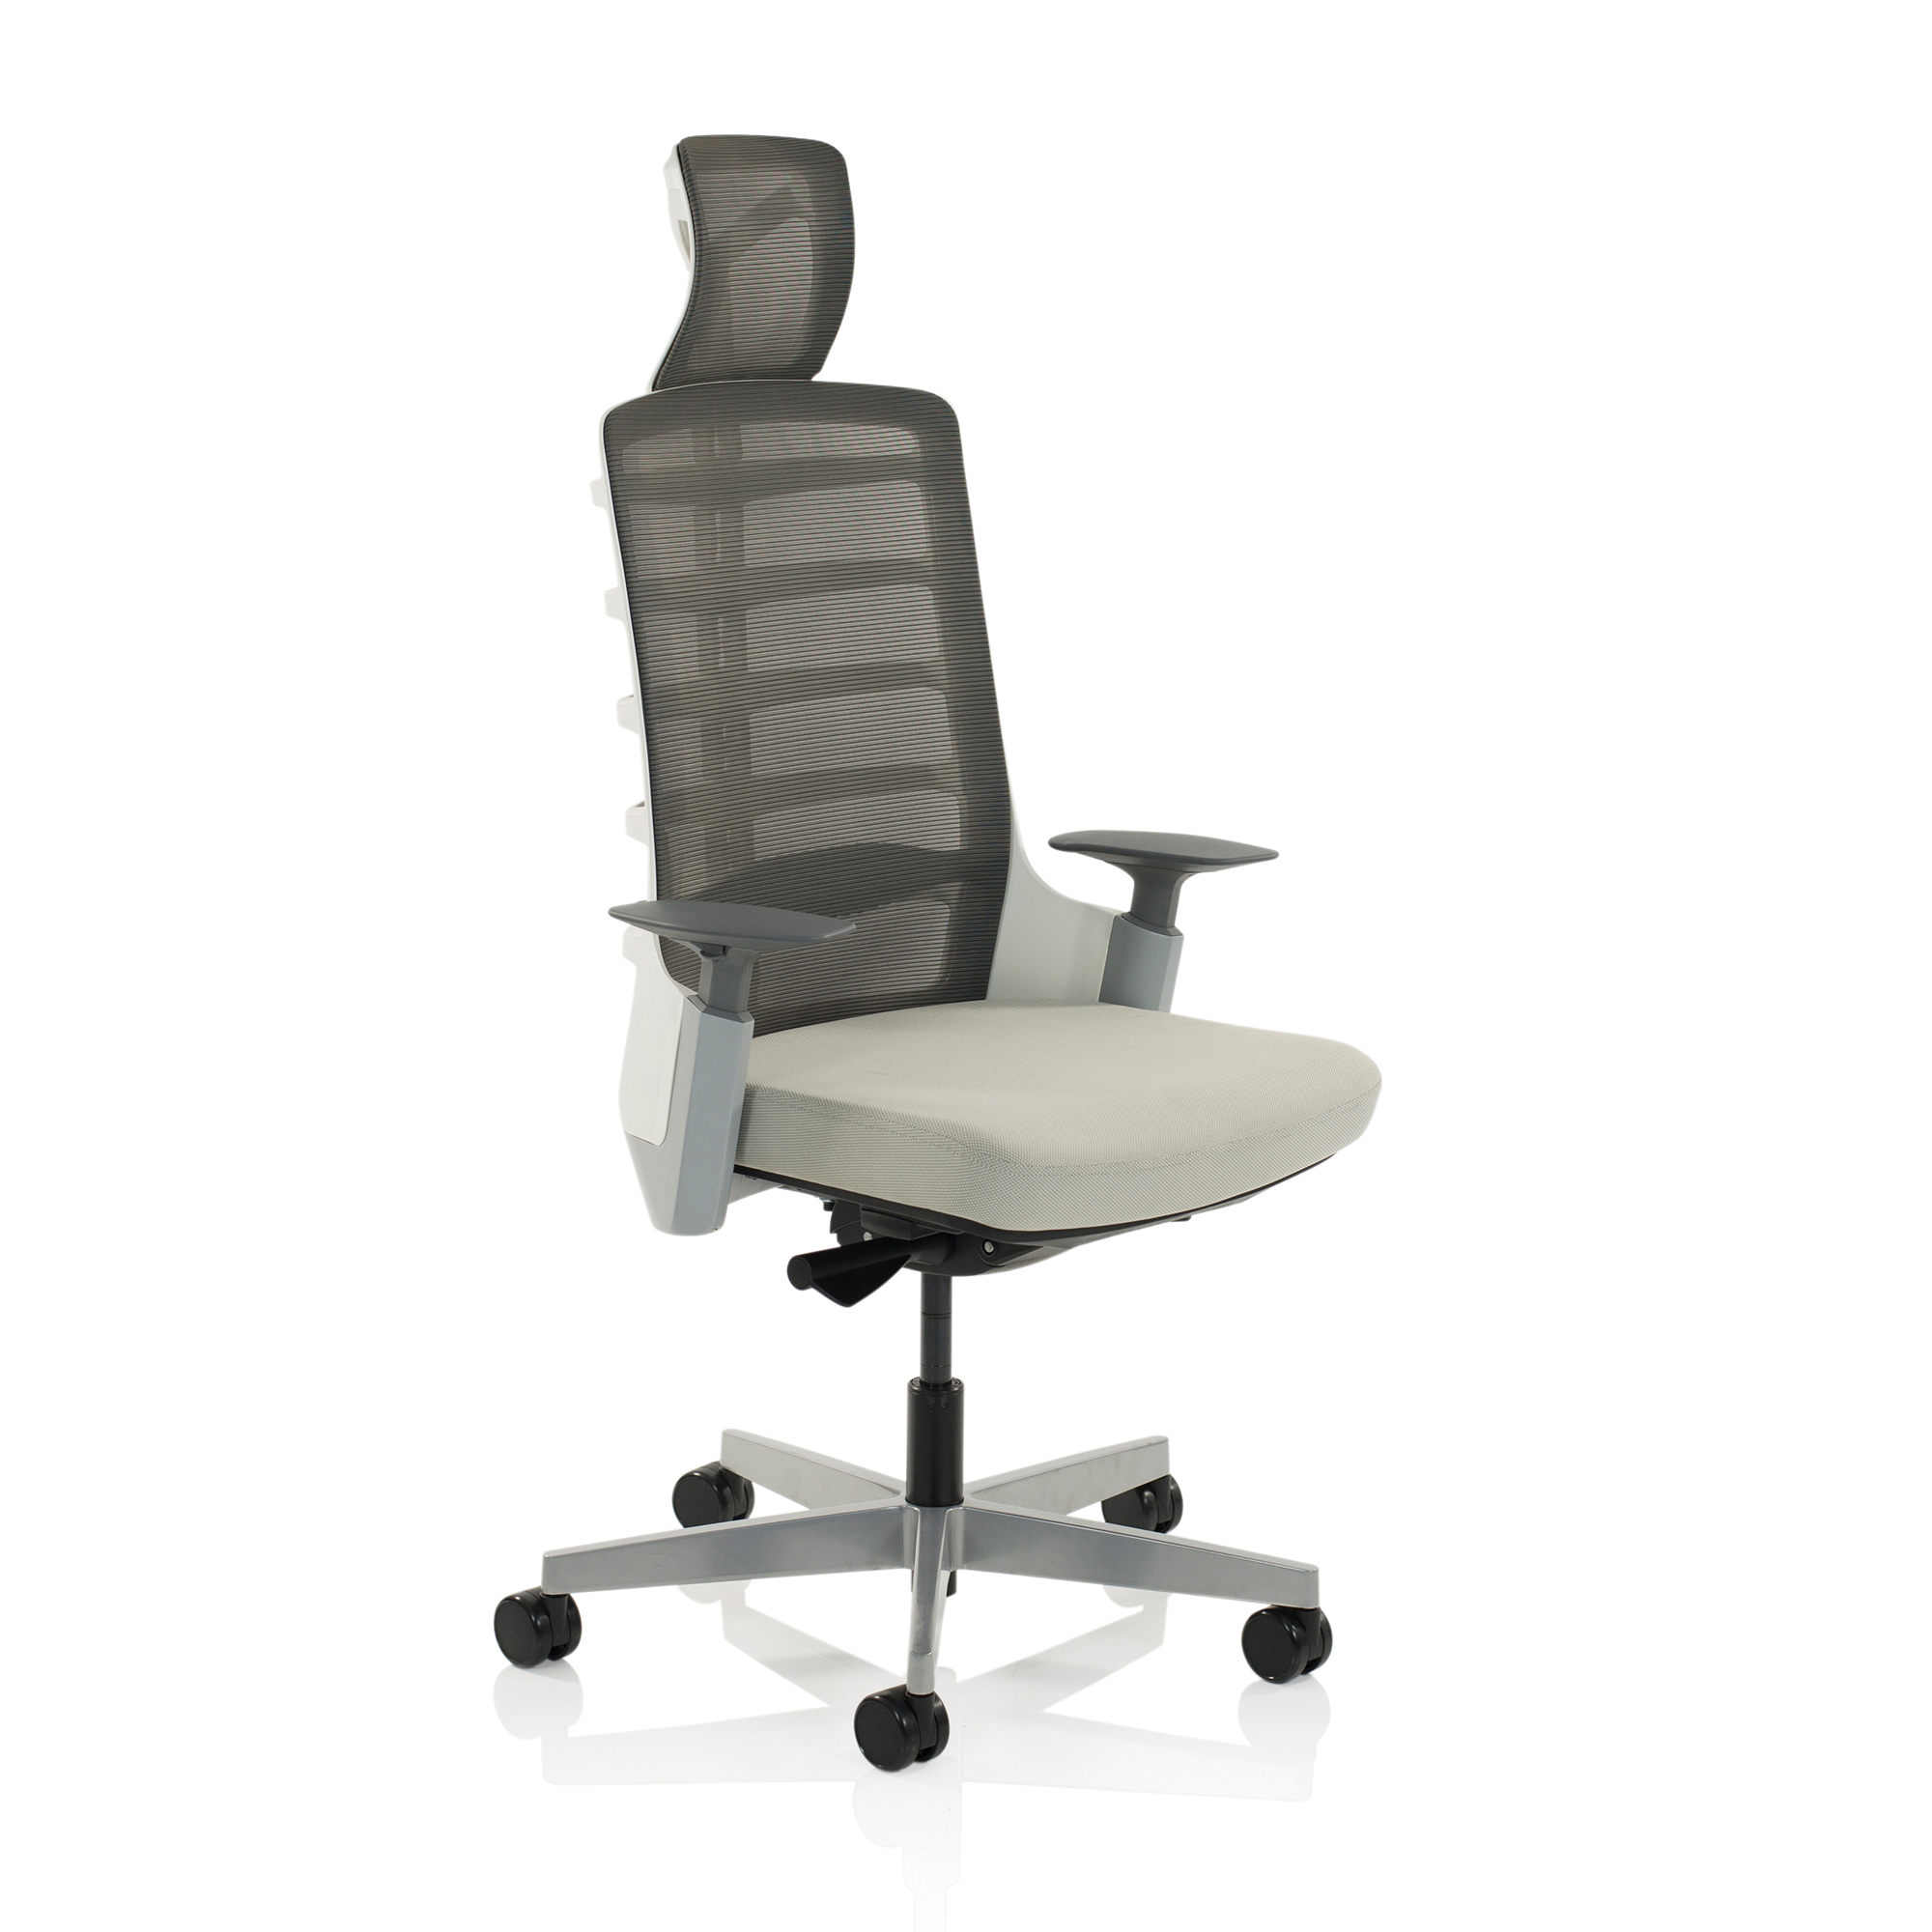 Adroit Exo Posture Chair Mesh Back With Fabric Seat Charcoal Grey Light Grey Ref EX000194